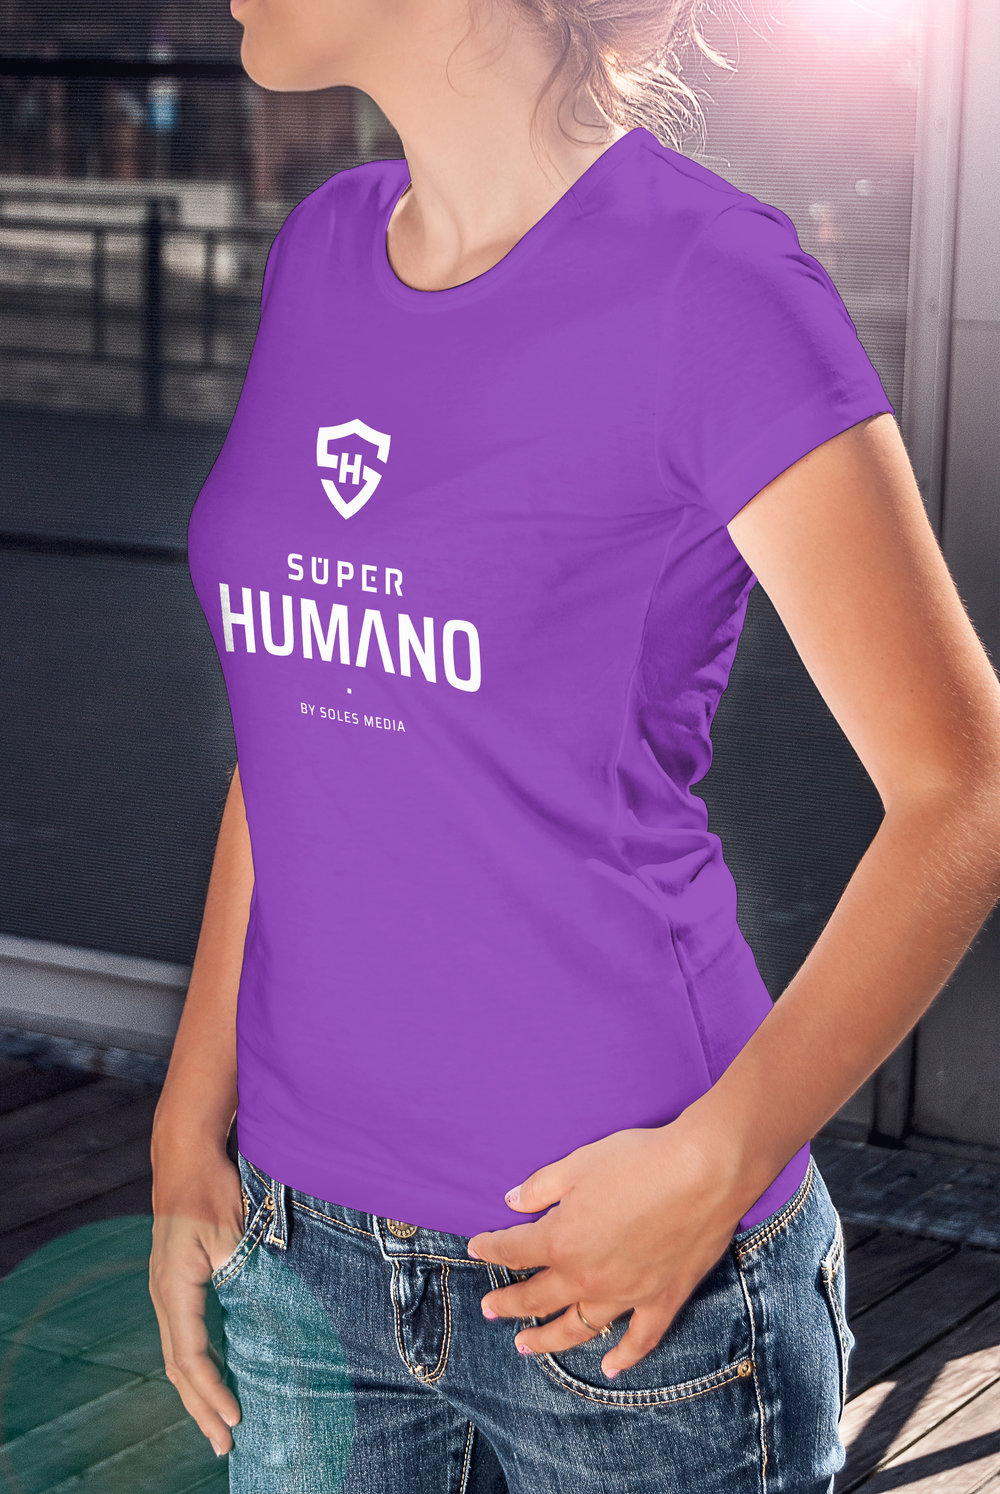 logo-1--shirt-woman.jpg